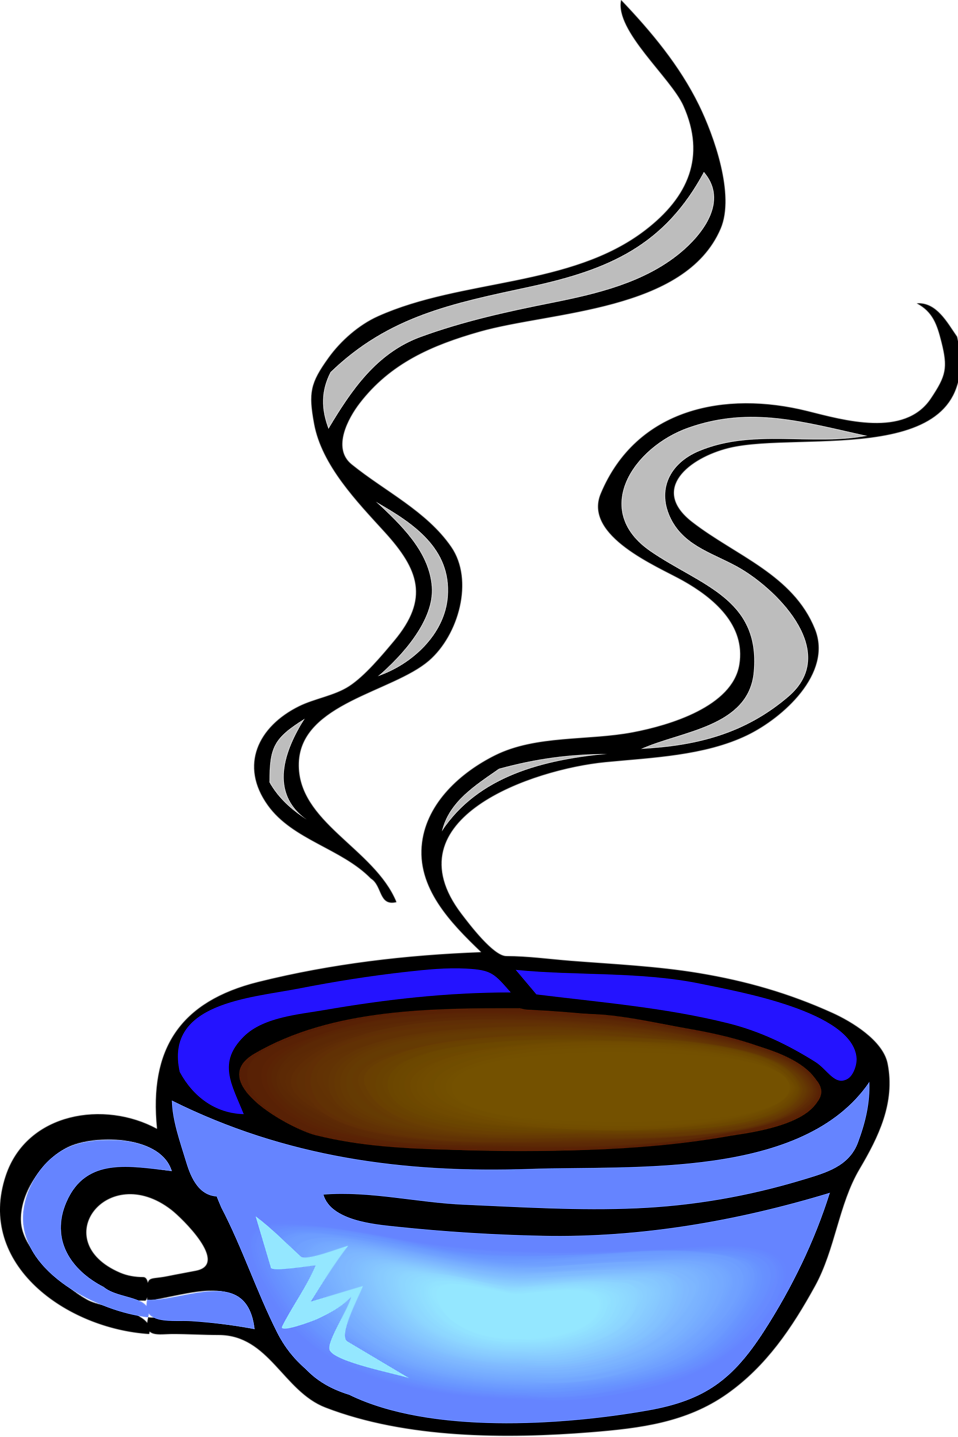 Steam clipart coffee cup Illustration a Coffee of Photo